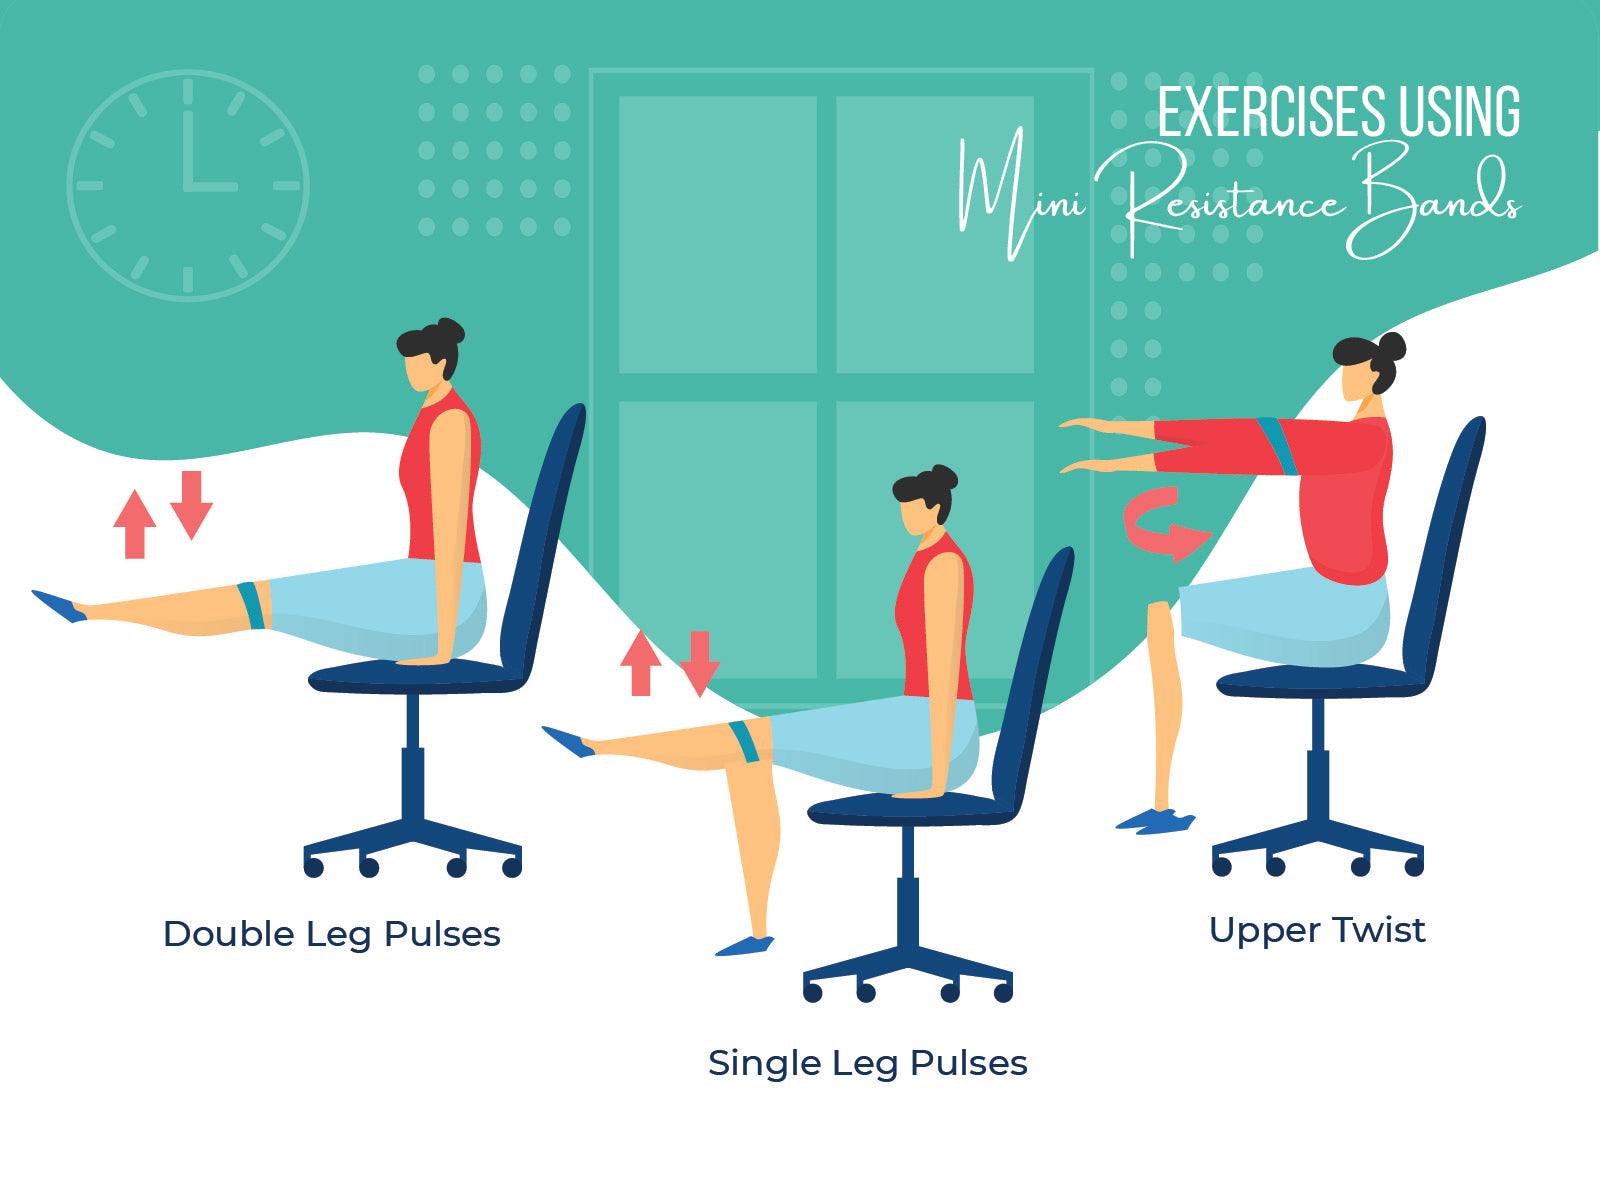 Exercises using mini resistance bands